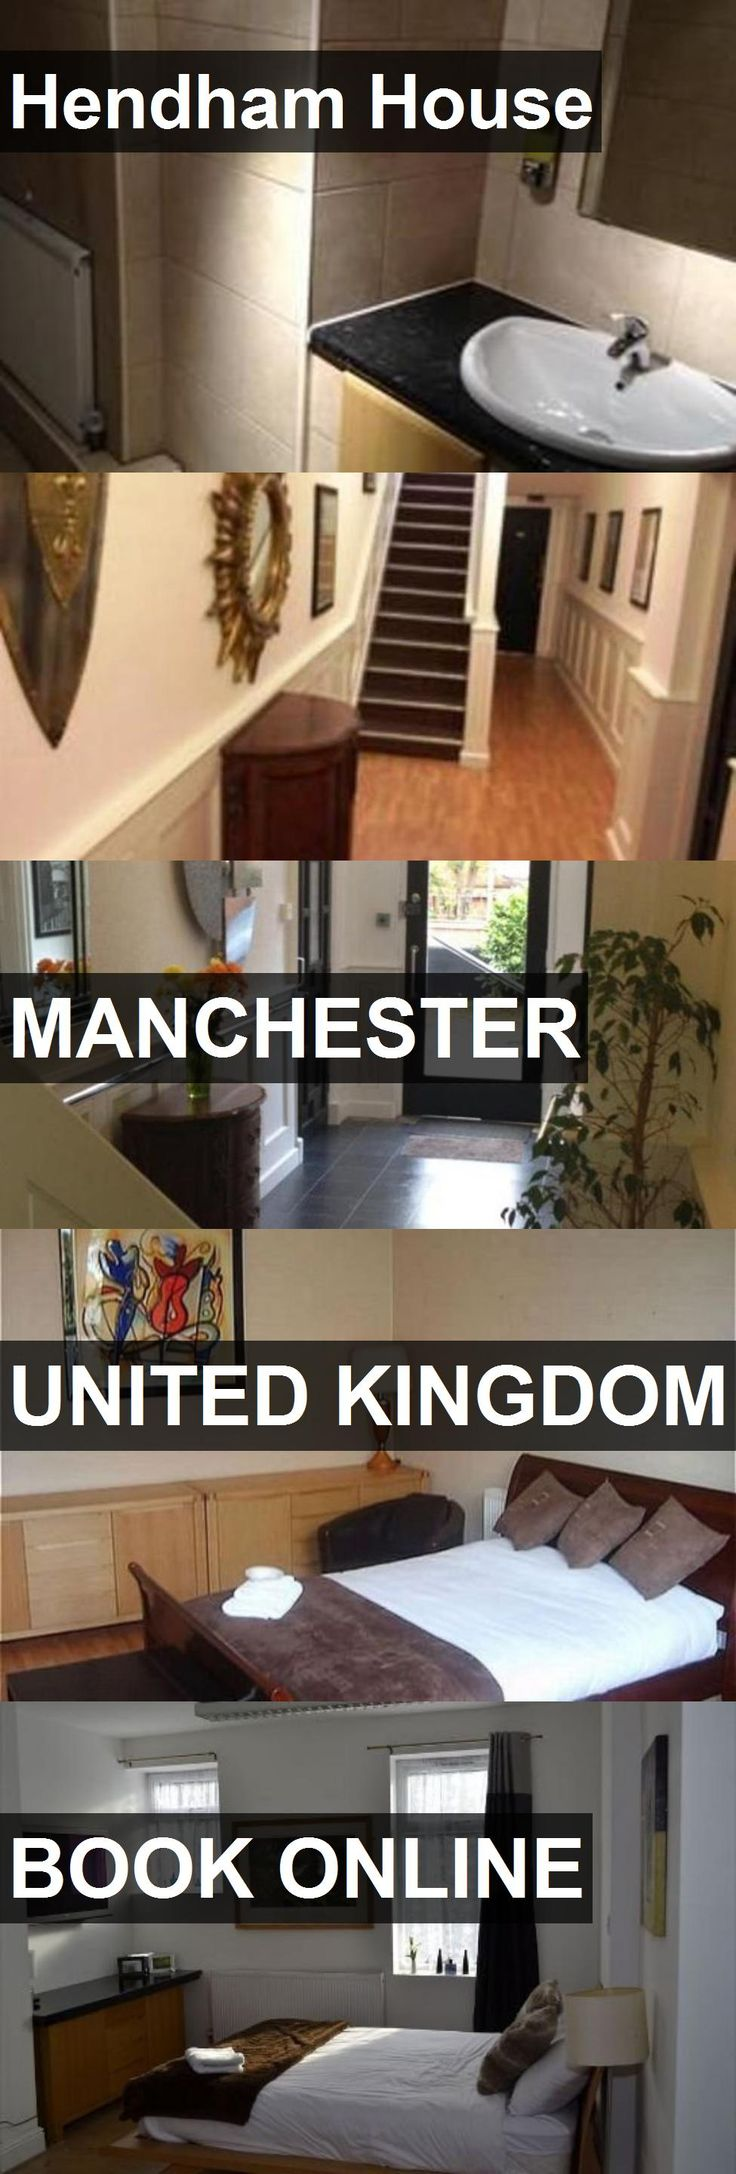 Hotel Hendham House in Manchester, United Kingdom. For more information, photos, reviews and best prices please follow the link. #UnitedKingdom #Manchester #travel #vacation #hotel